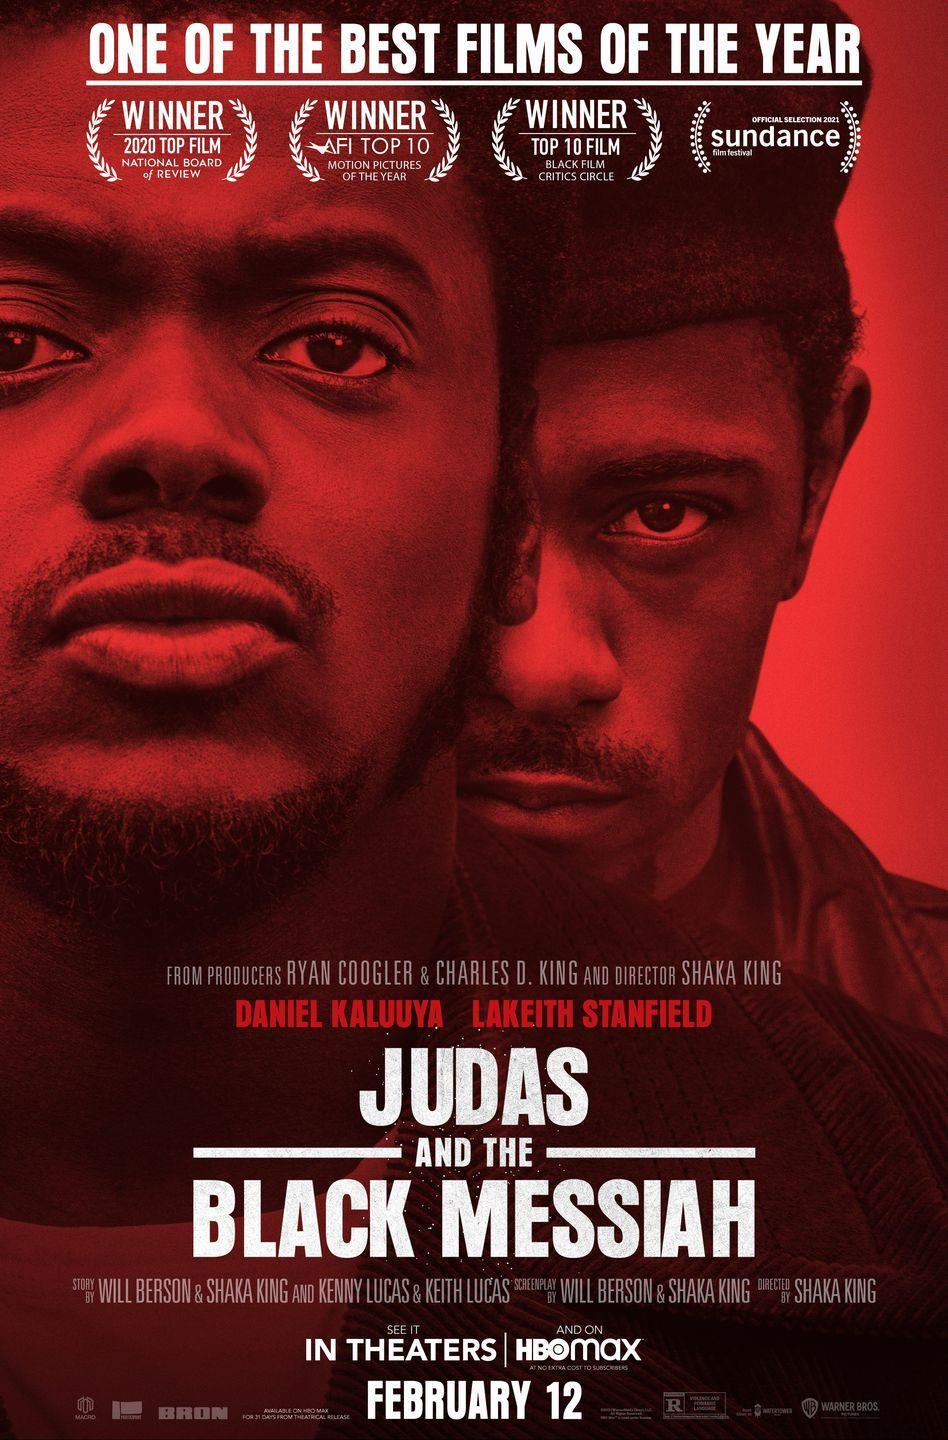 """<p>Earning six Oscar nominations, <em><a href=""""https://www.womenshealthmag.com/life/a35490847/judas-and-the-black-messiah-true-story/"""" rel=""""nofollow noopener"""" target=""""_blank"""" data-ylk=""""slk:Judas and the Black Messiah"""" class=""""link rapid-noclick-resp"""">Judas and the Black Messiah</a></em> became a critically-acclaimed classic as soon as it hit the film scene in early 2021. Daniel Kaluuya plays Fred Hampton, chairman of the Illinois chapter of the Black Panther Party, who is turned in by an FBI informant. </p><p><a class=""""link rapid-noclick-resp"""" href=""""https://www.amazon.com/Judas-Black-Messiah-Daniel-Kaluuya/dp/B0916KJQL7?tag=syn-yahoo-20&ascsubtag=%5Bartid%7C2140.g.27486022%5Bsrc%7Cyahoo-us"""" rel=""""nofollow noopener"""" target=""""_blank"""" data-ylk=""""slk:Watch Here"""">Watch Here</a></p>"""